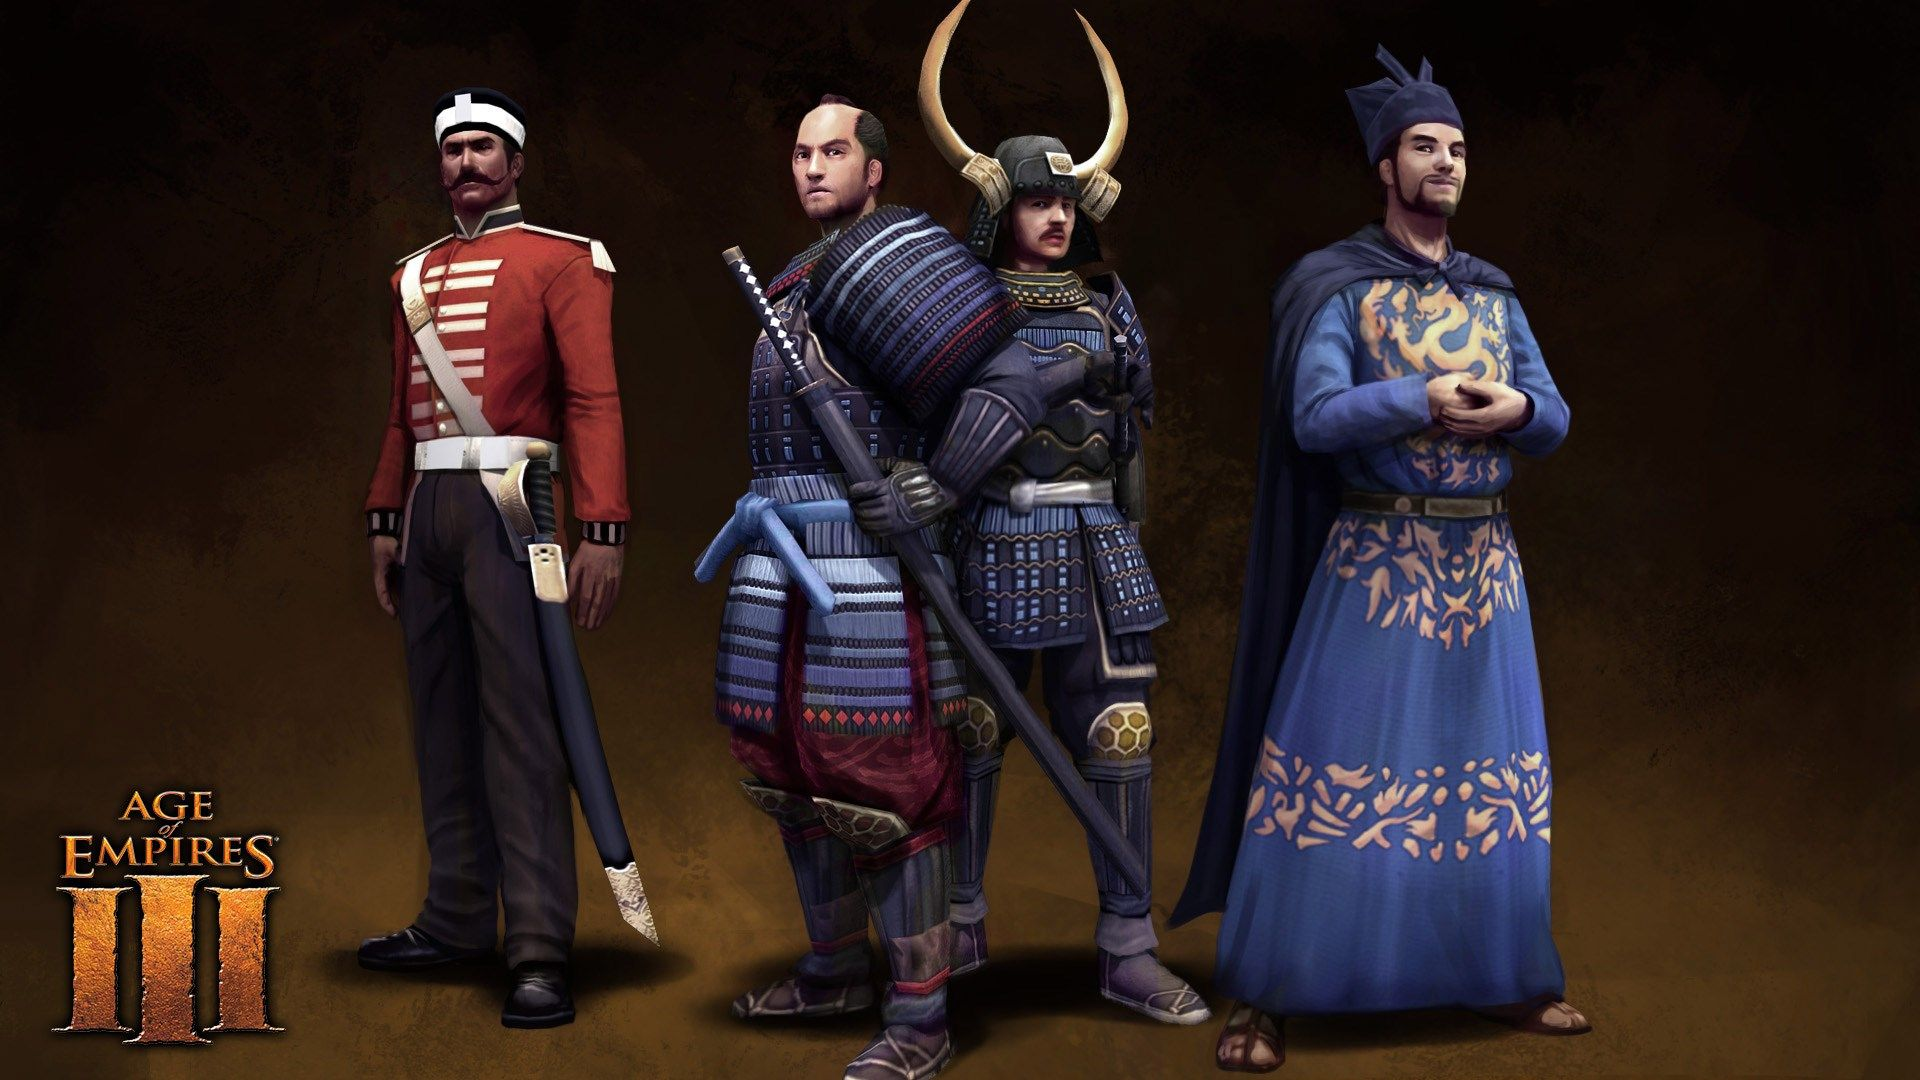 1920x1080 Age of Empires III game wallpaper   wallpapers and